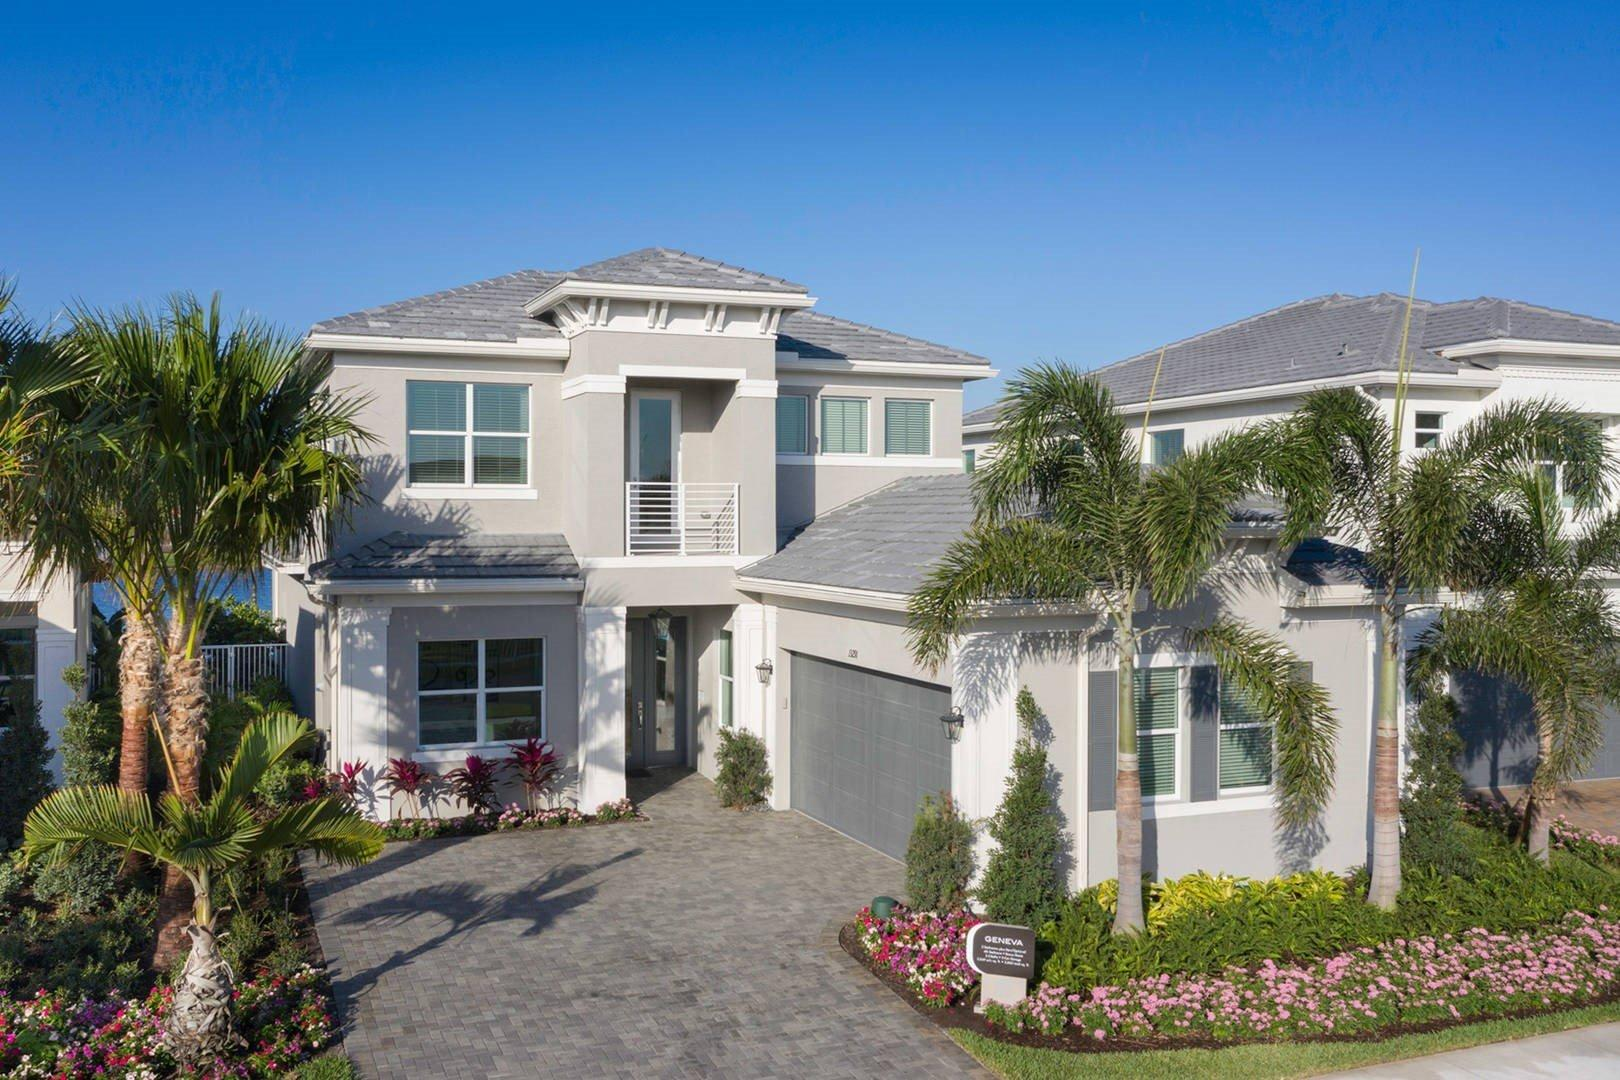 7676  Wildflower Shores Drive  For Sale 10665227, FL